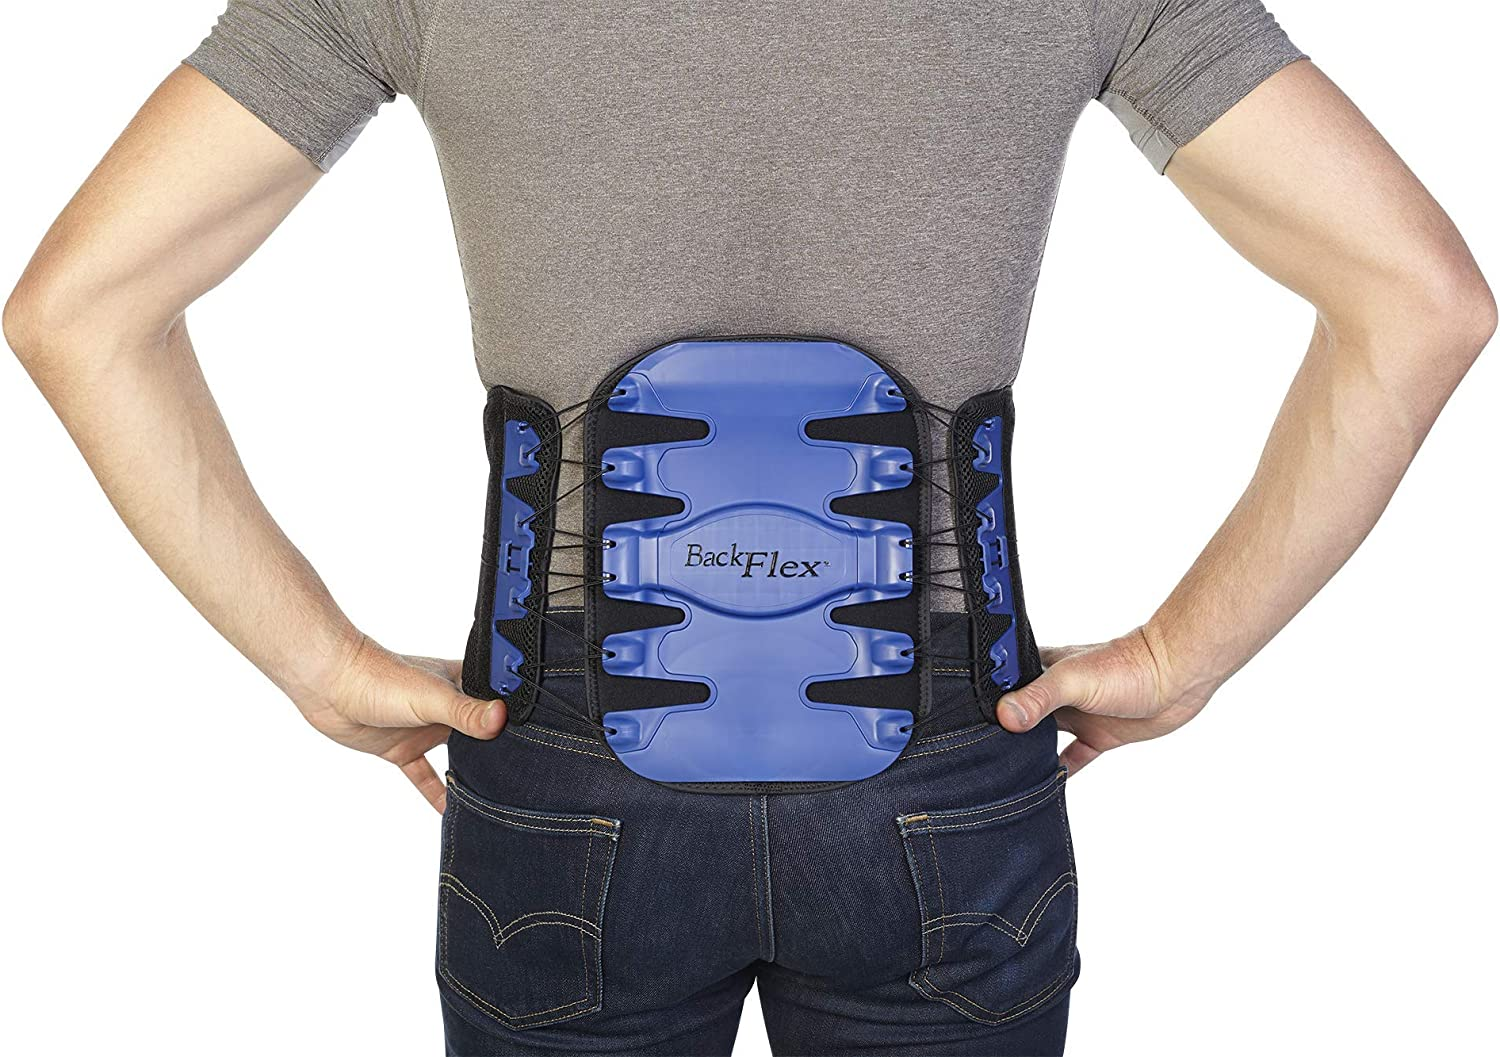 Back Flex Lumbar Brace - Maximum Pain Relief for Herniated Discs, Degenerated Discs, Spinal Stenosis, Facet Arthritis, and Lumbago - by BioSkin (Med/Large)